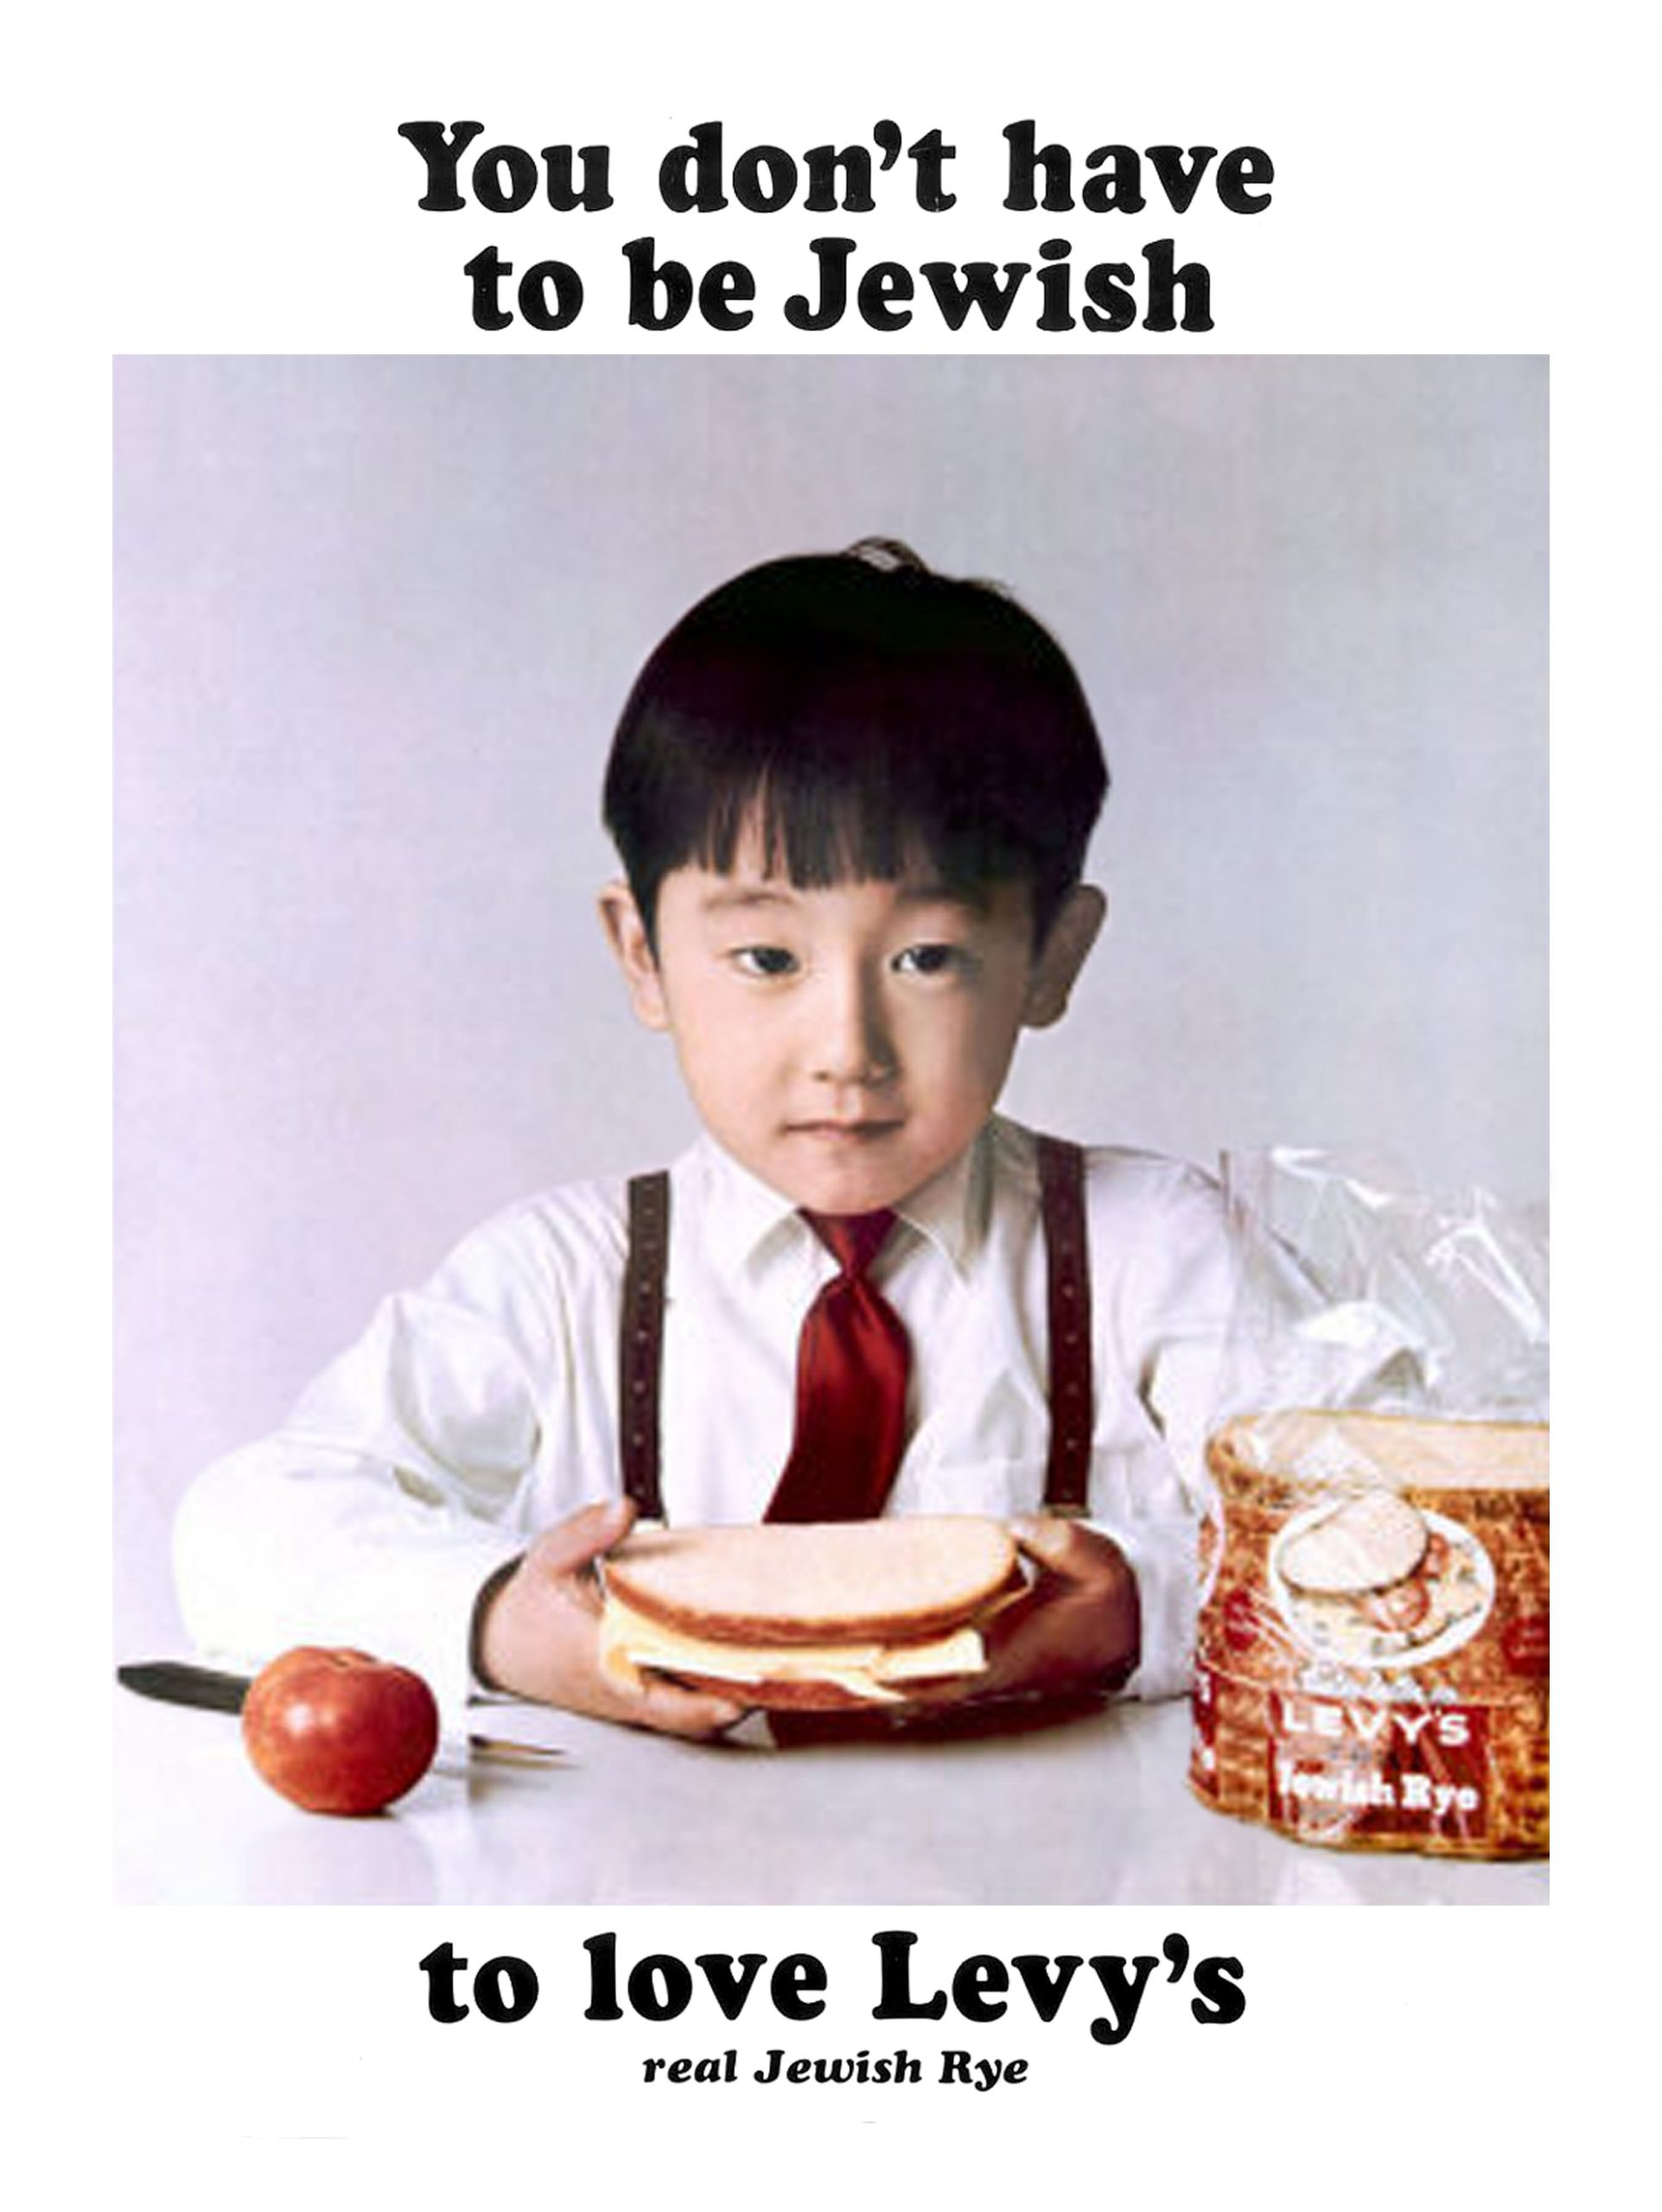 photographic poster of an asian boy holding a sandwich titled